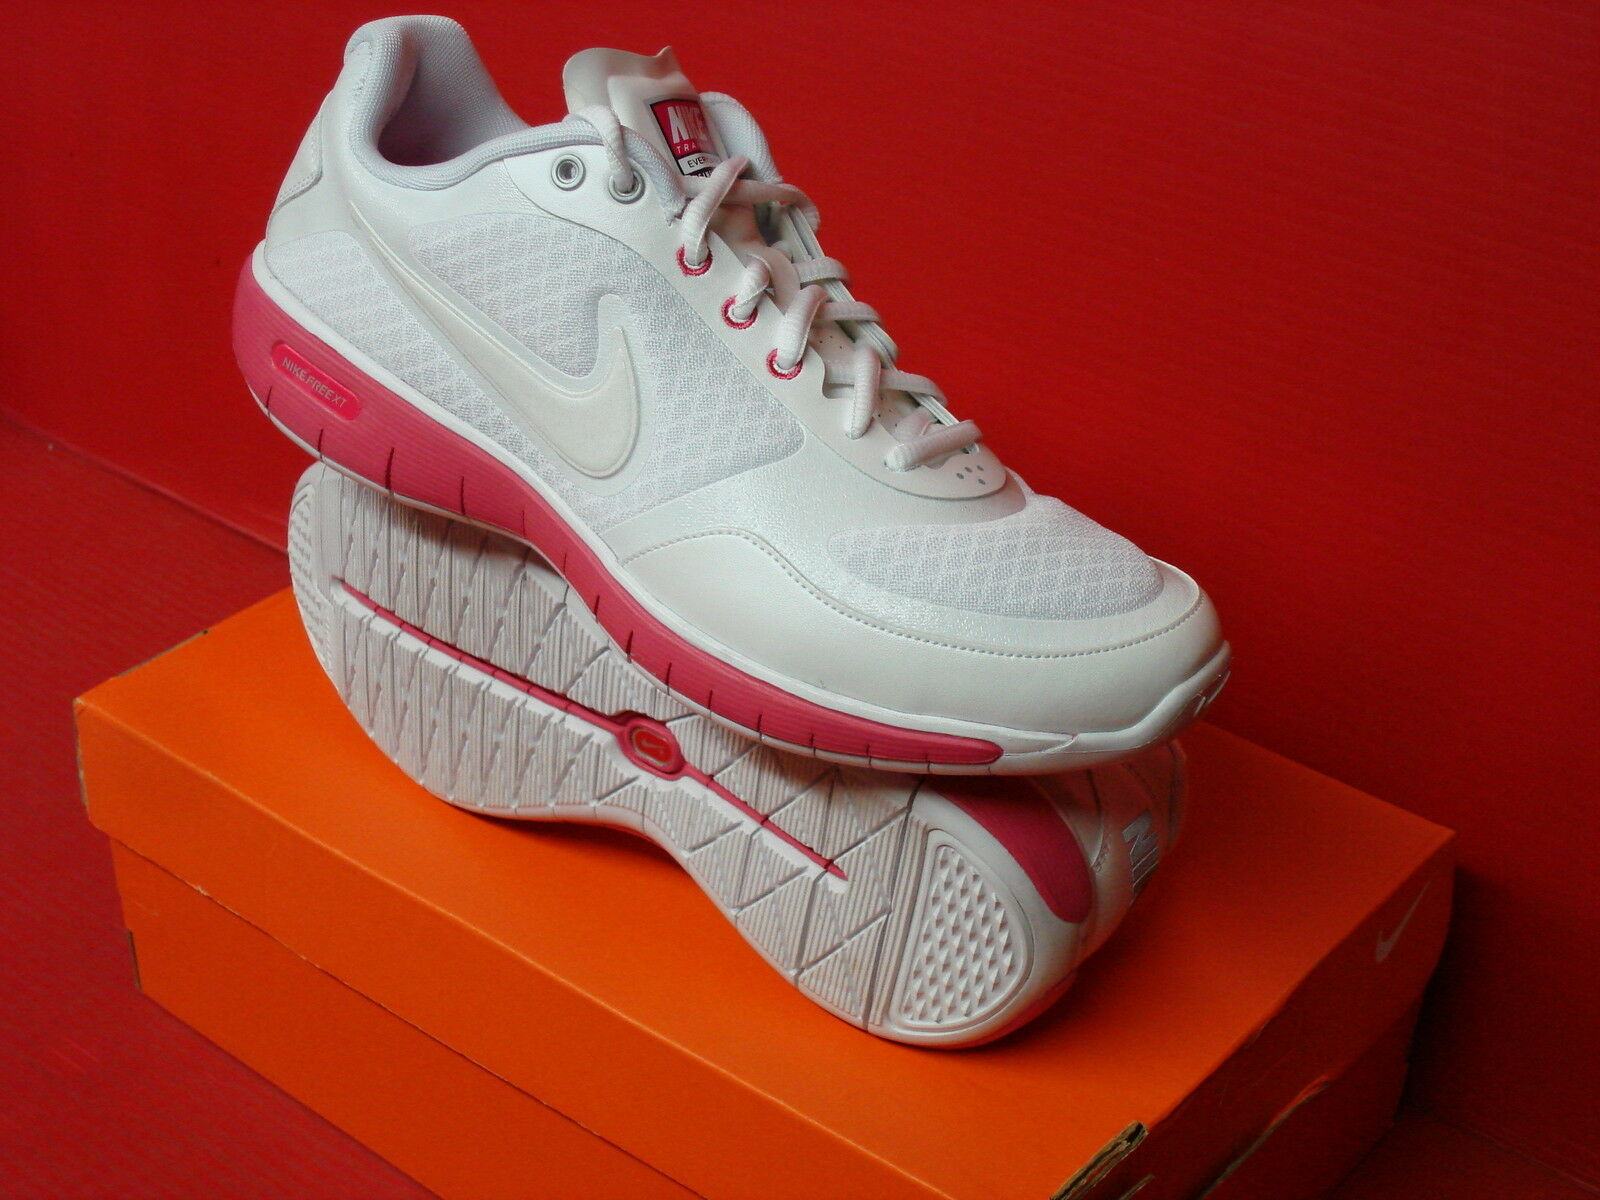 0c2b57c0ff91 NIKE WMNS NK FREE XT EVERYDAY EVERYDAY EVERYDAY FIT+ WOMENS RUNNING 429844  32f821